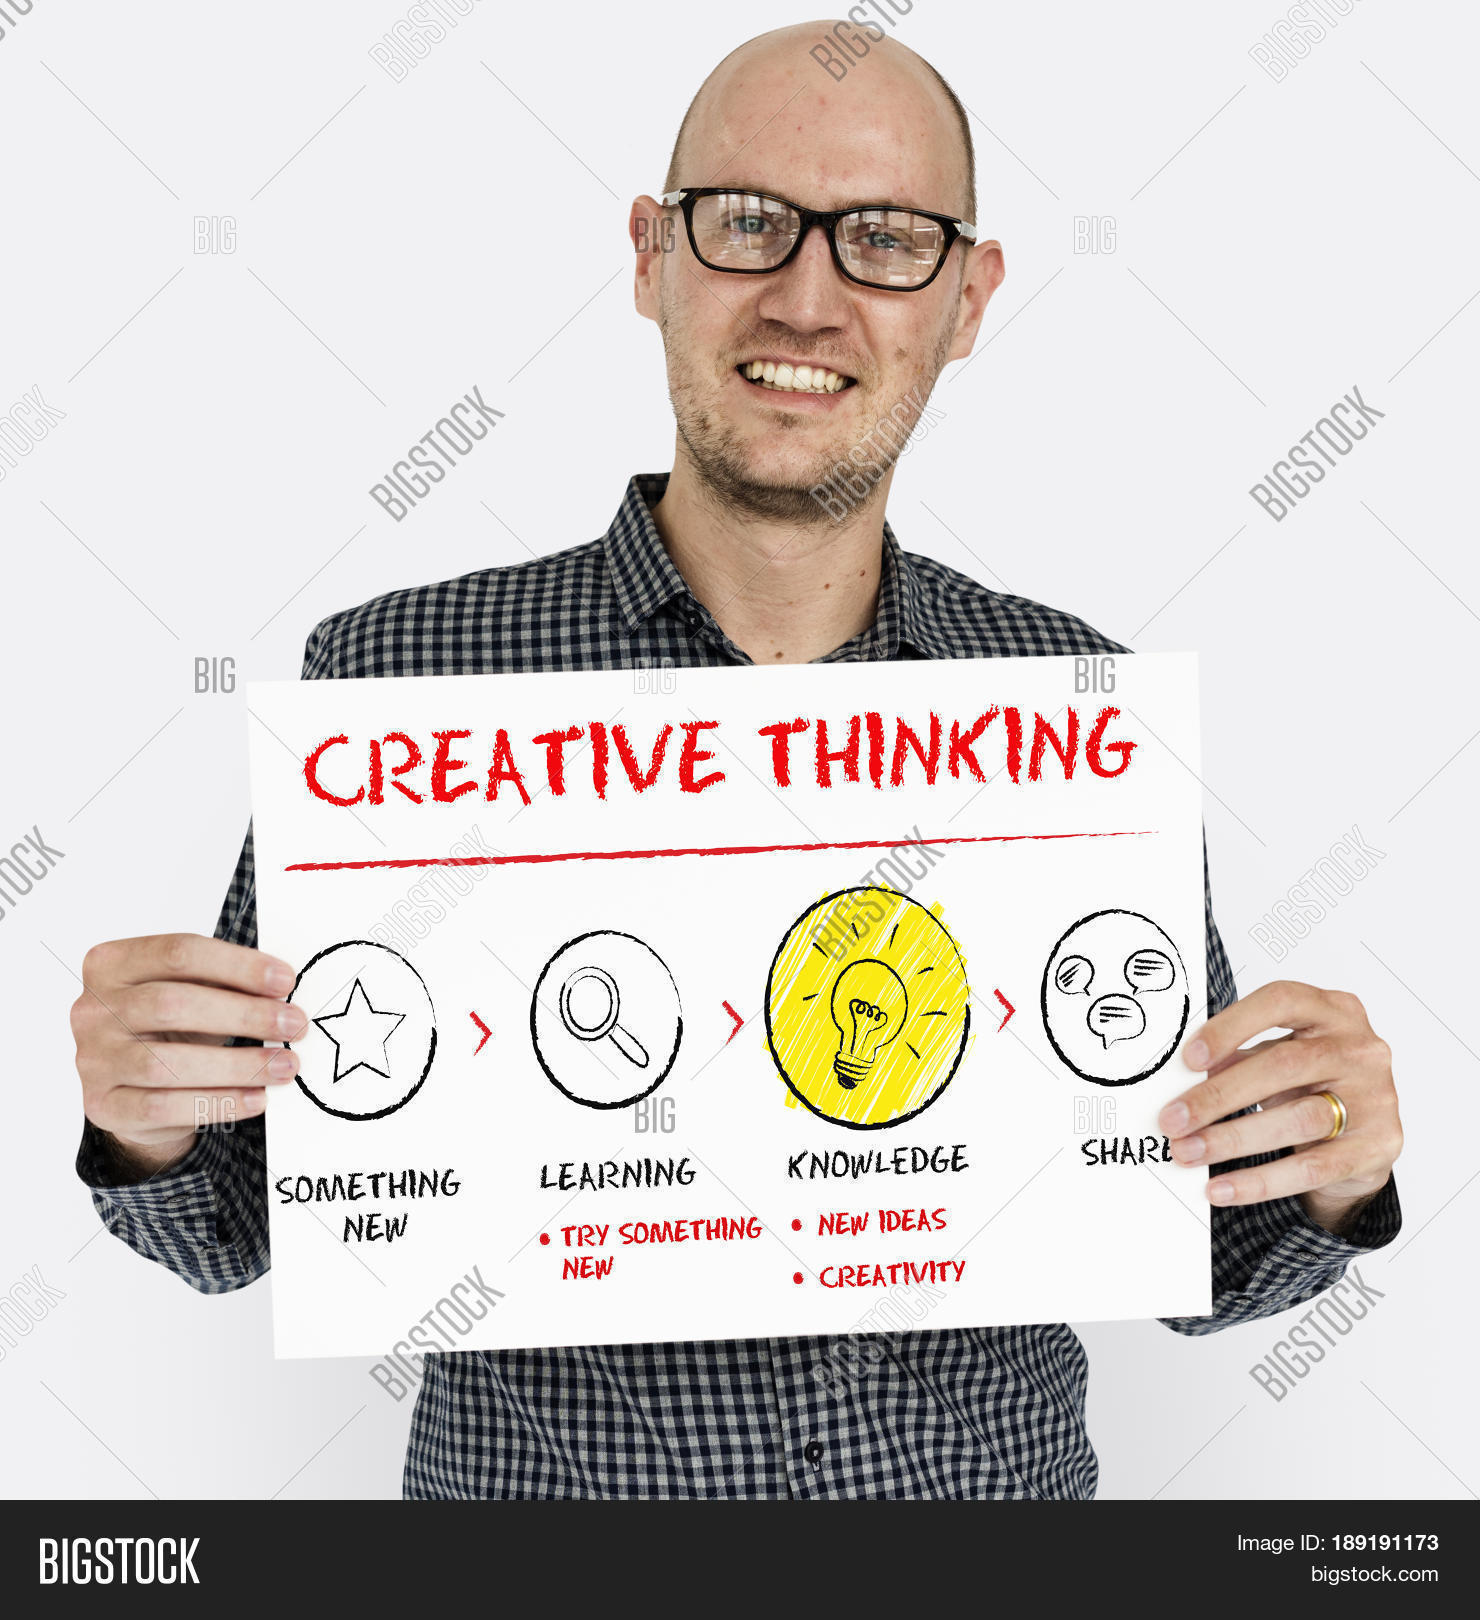 what organizational conditions seem to support creative thinking at nottingham spirk Guidelines for health education and environmental supports for actions and conditions of living help coalesce organizational.